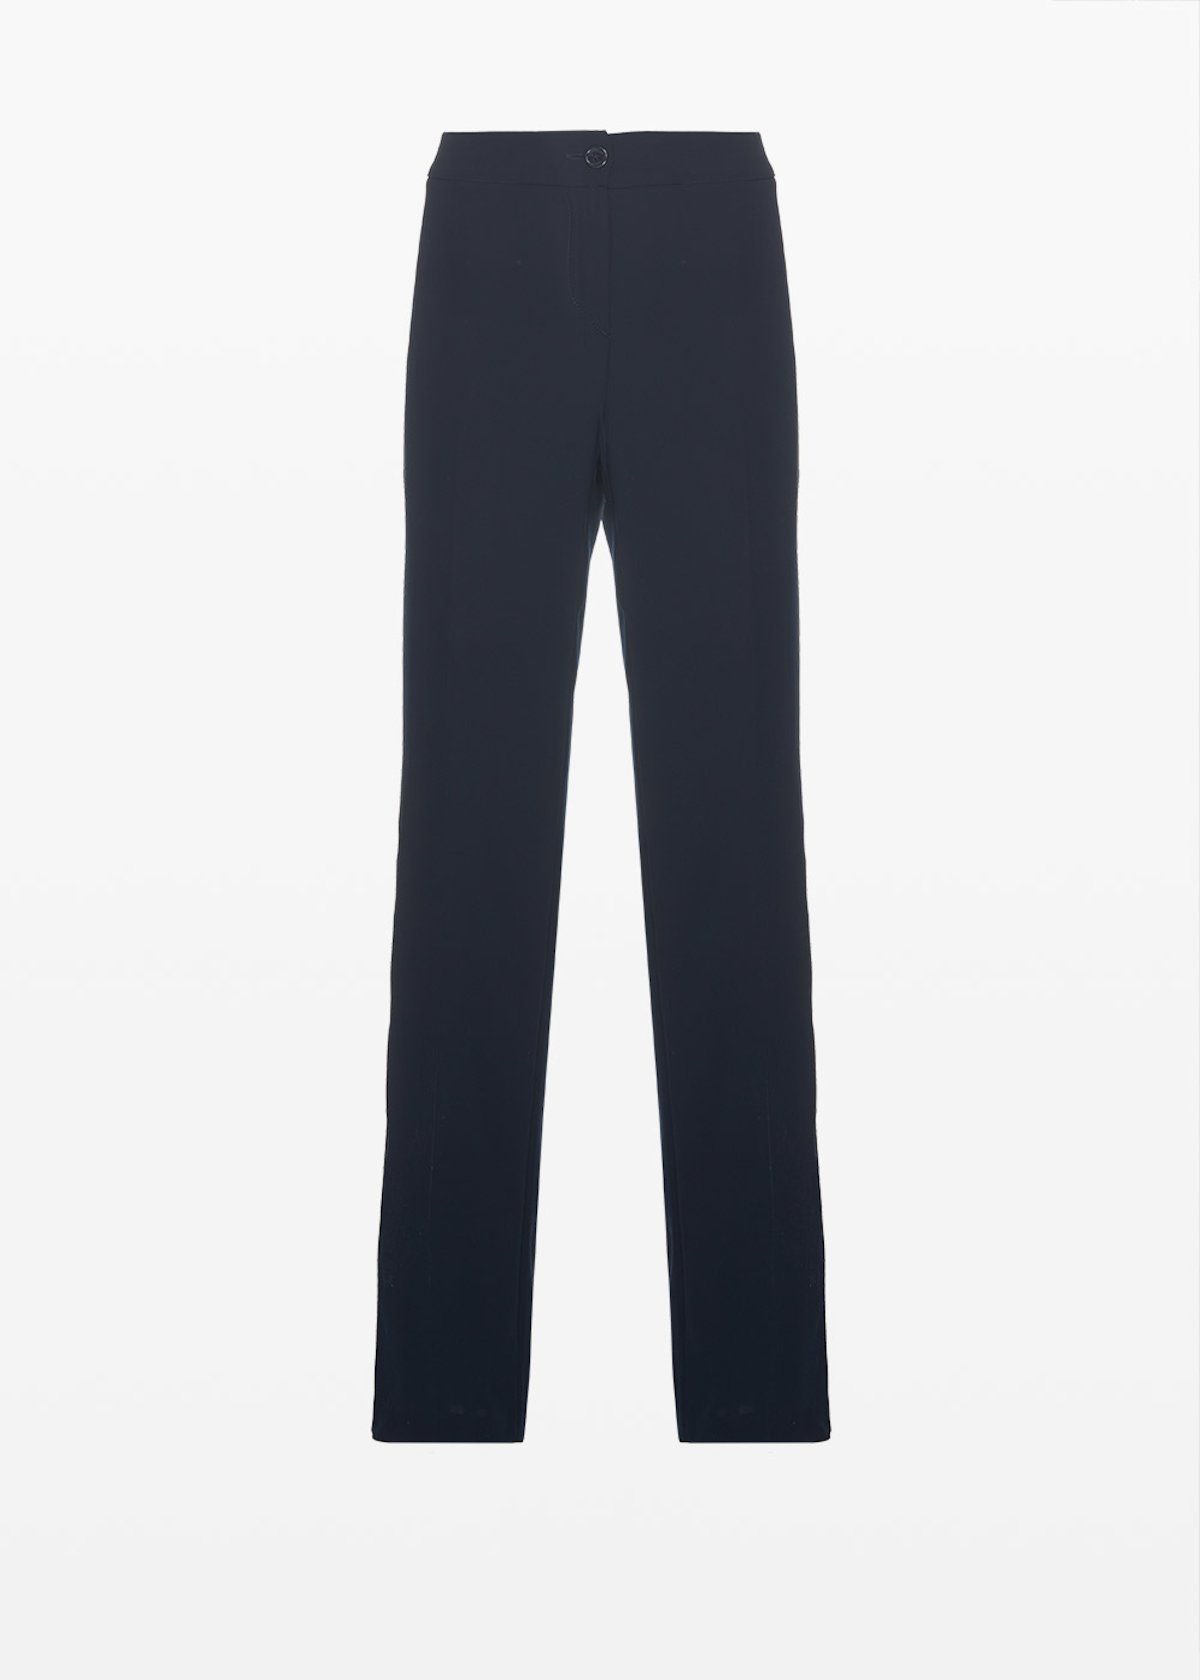 Cadi Pompeo trousers with side zip